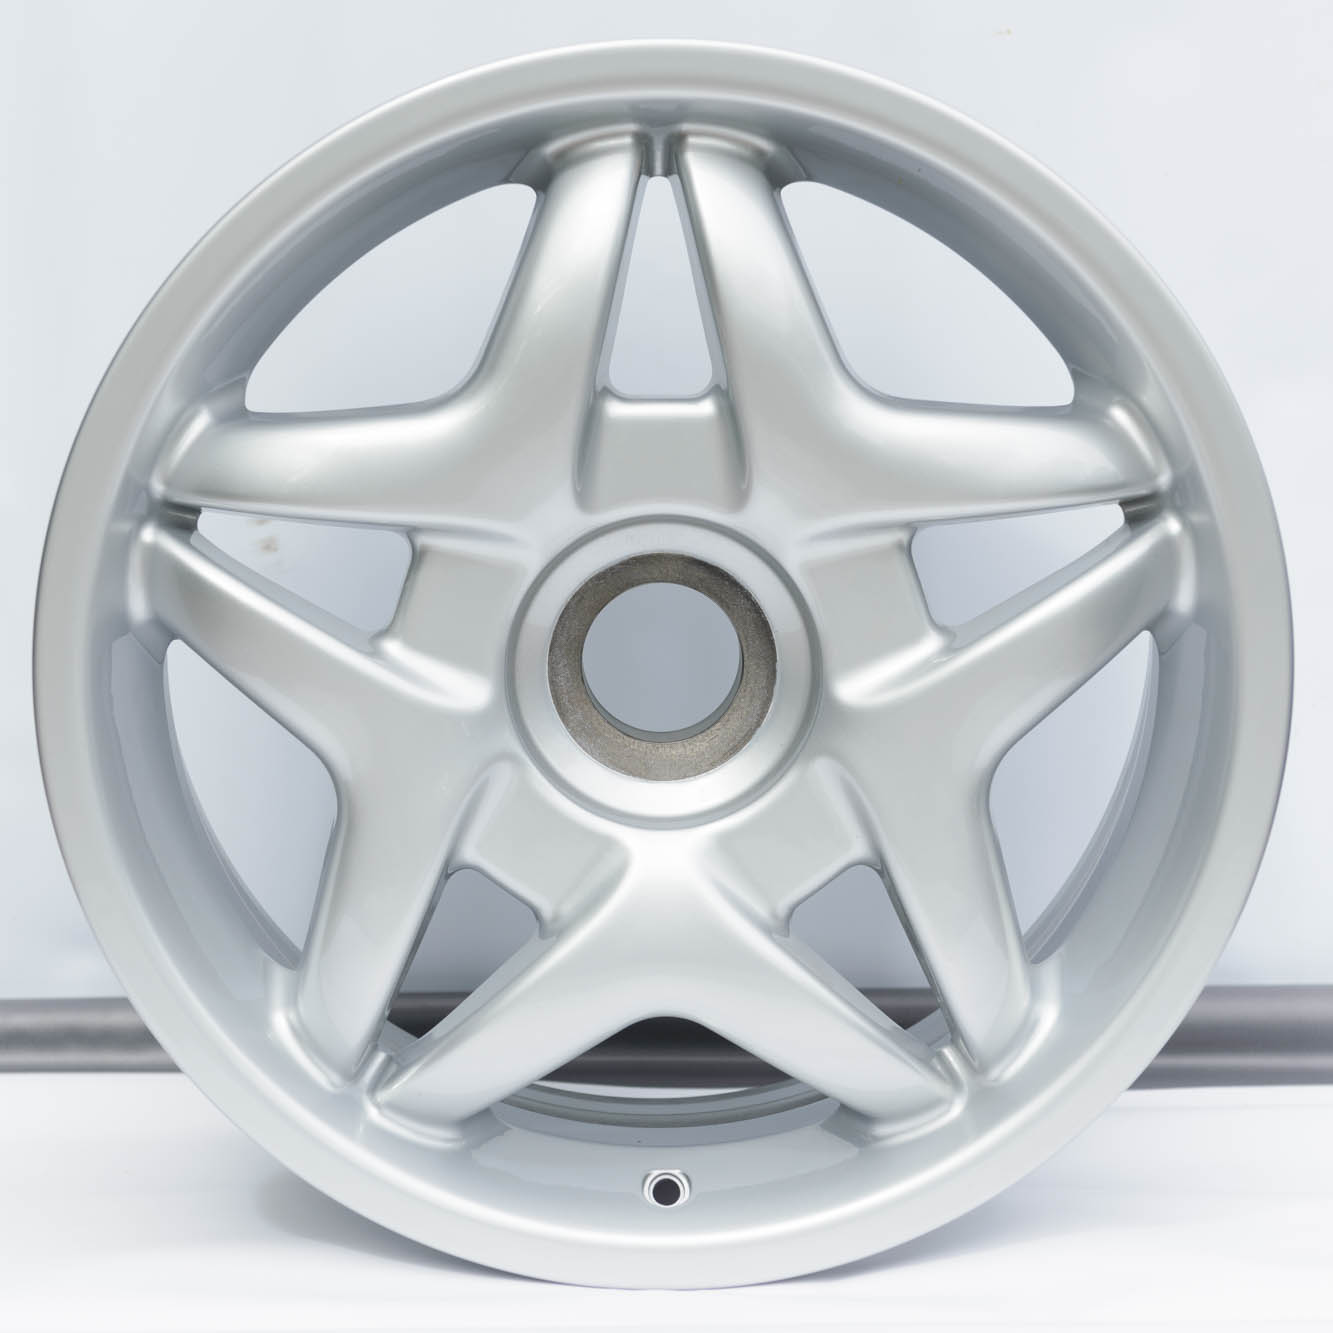 Ferrari F50 Set Of New Magnesium Alloy Wheels